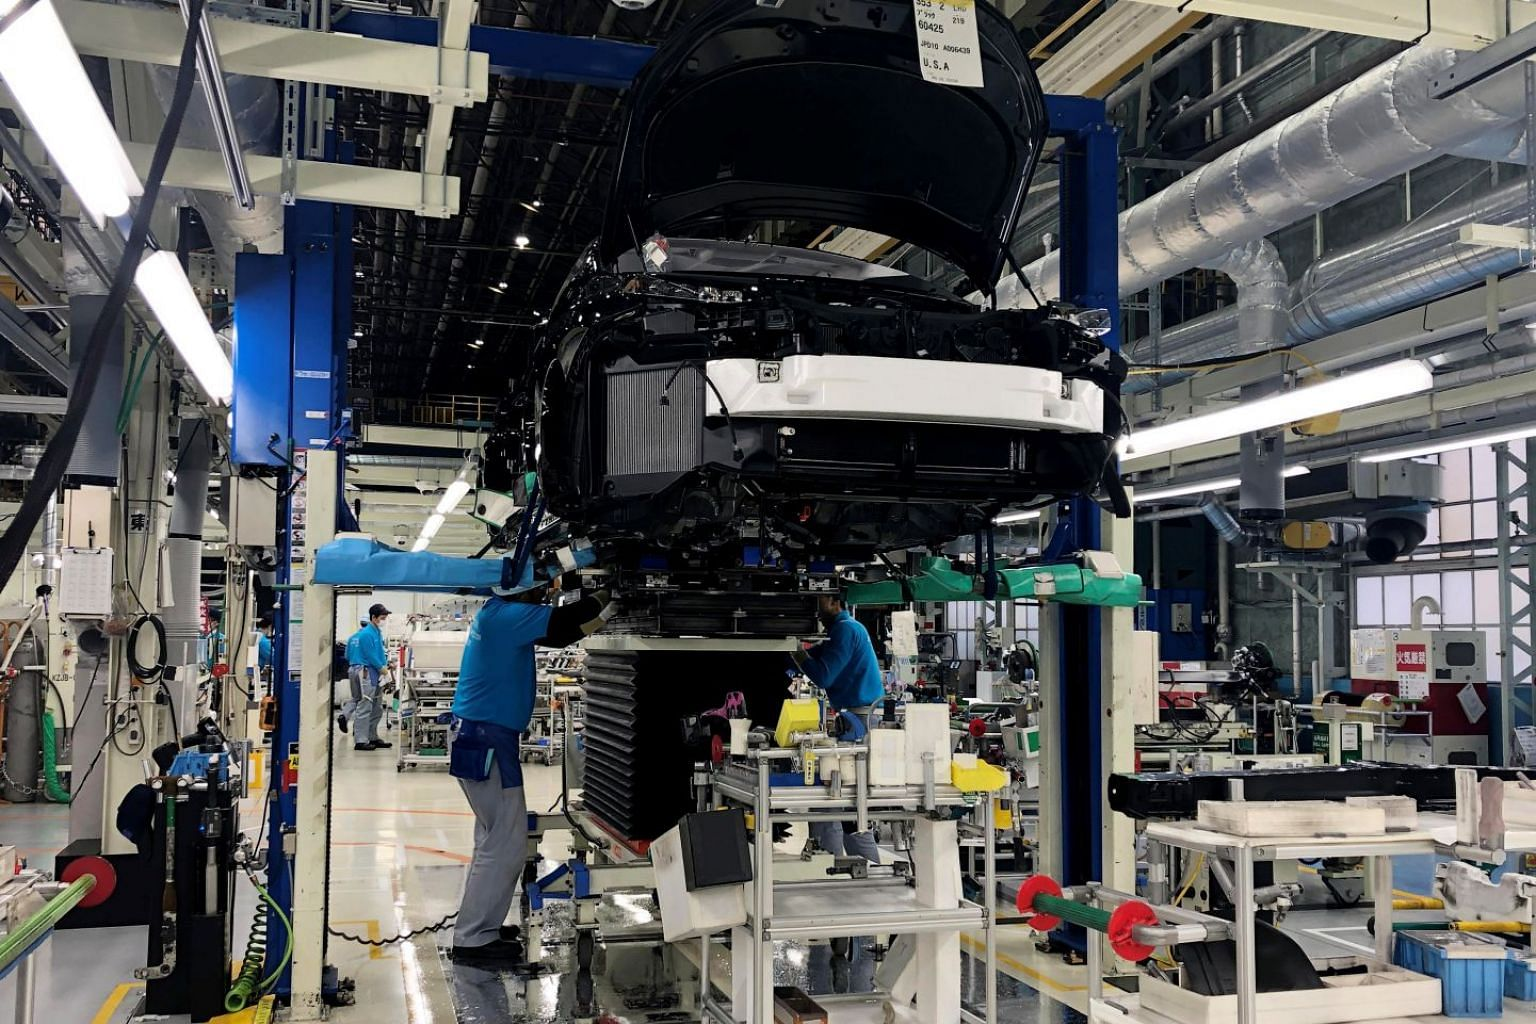 Hydrogen cars boast some of the advantages of batteryelectric cars, including powerful acceleration, silent operation and no emissions at the point of use except water vapour. (Above) Workers install the fuel-cell power system in a Toyota Mirai at a facto